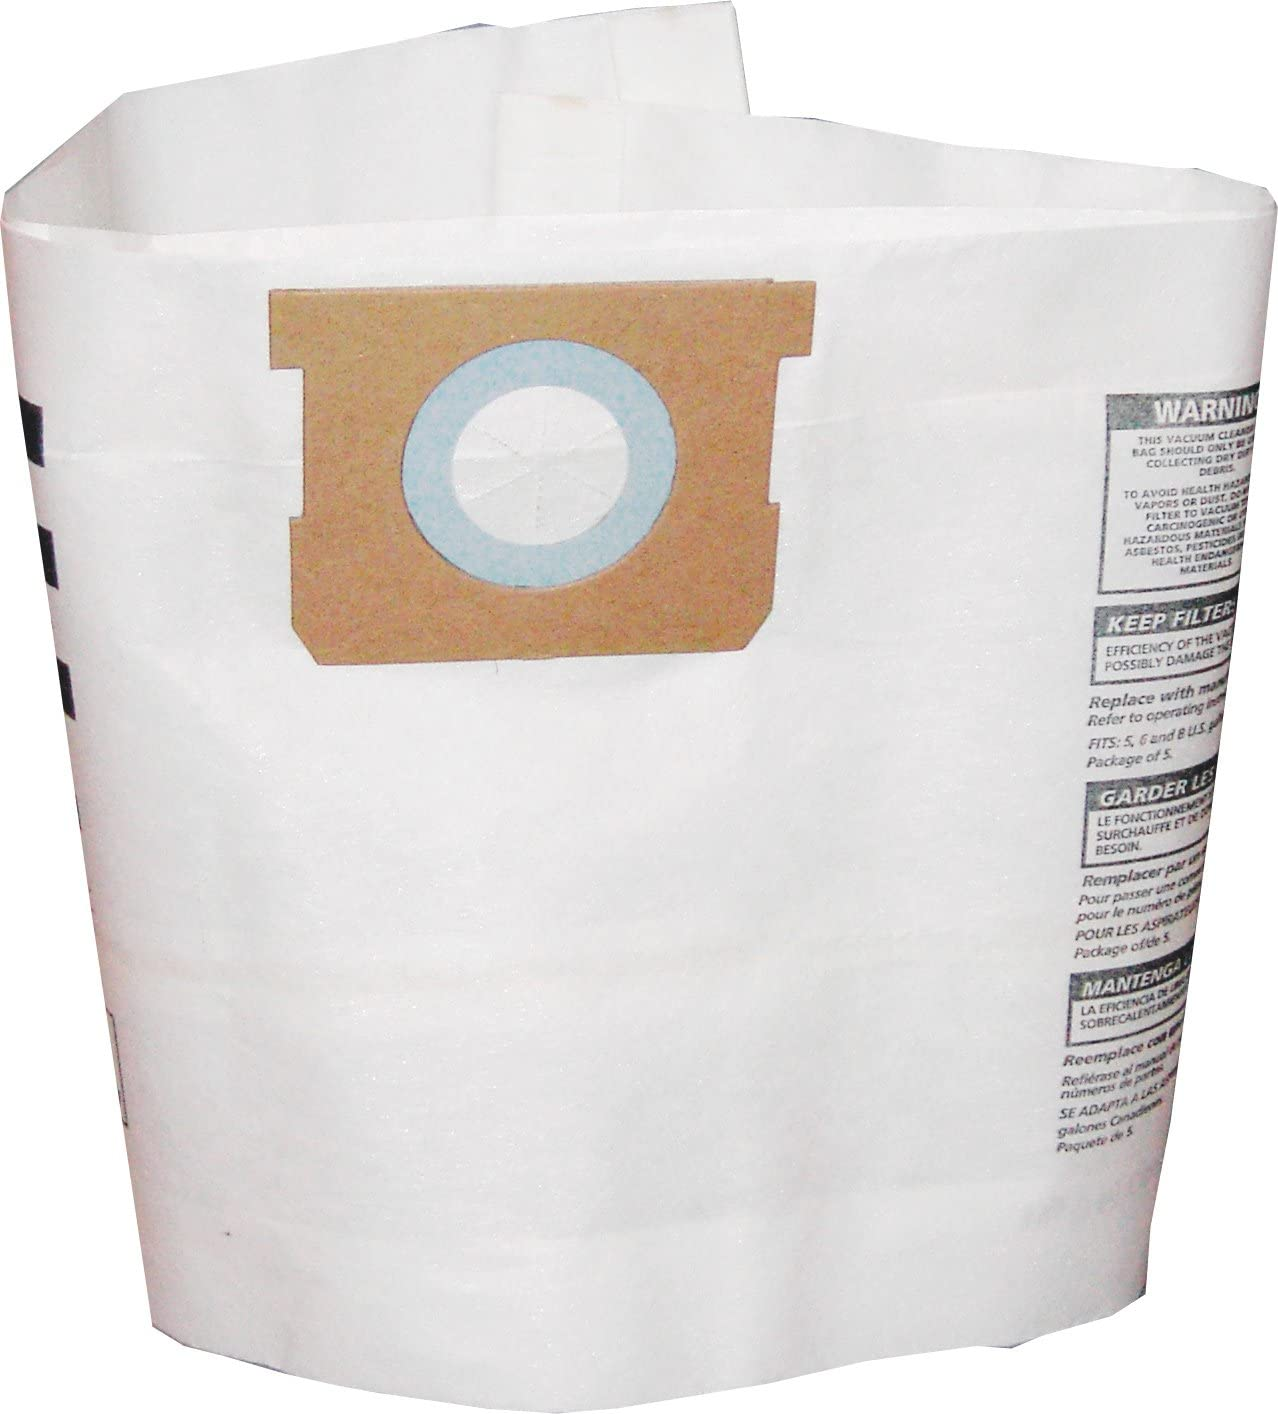 Shop-Vac 90661-33 3-Pack 5- to 8-Gallon Collection Filter Bags - Quantity 1